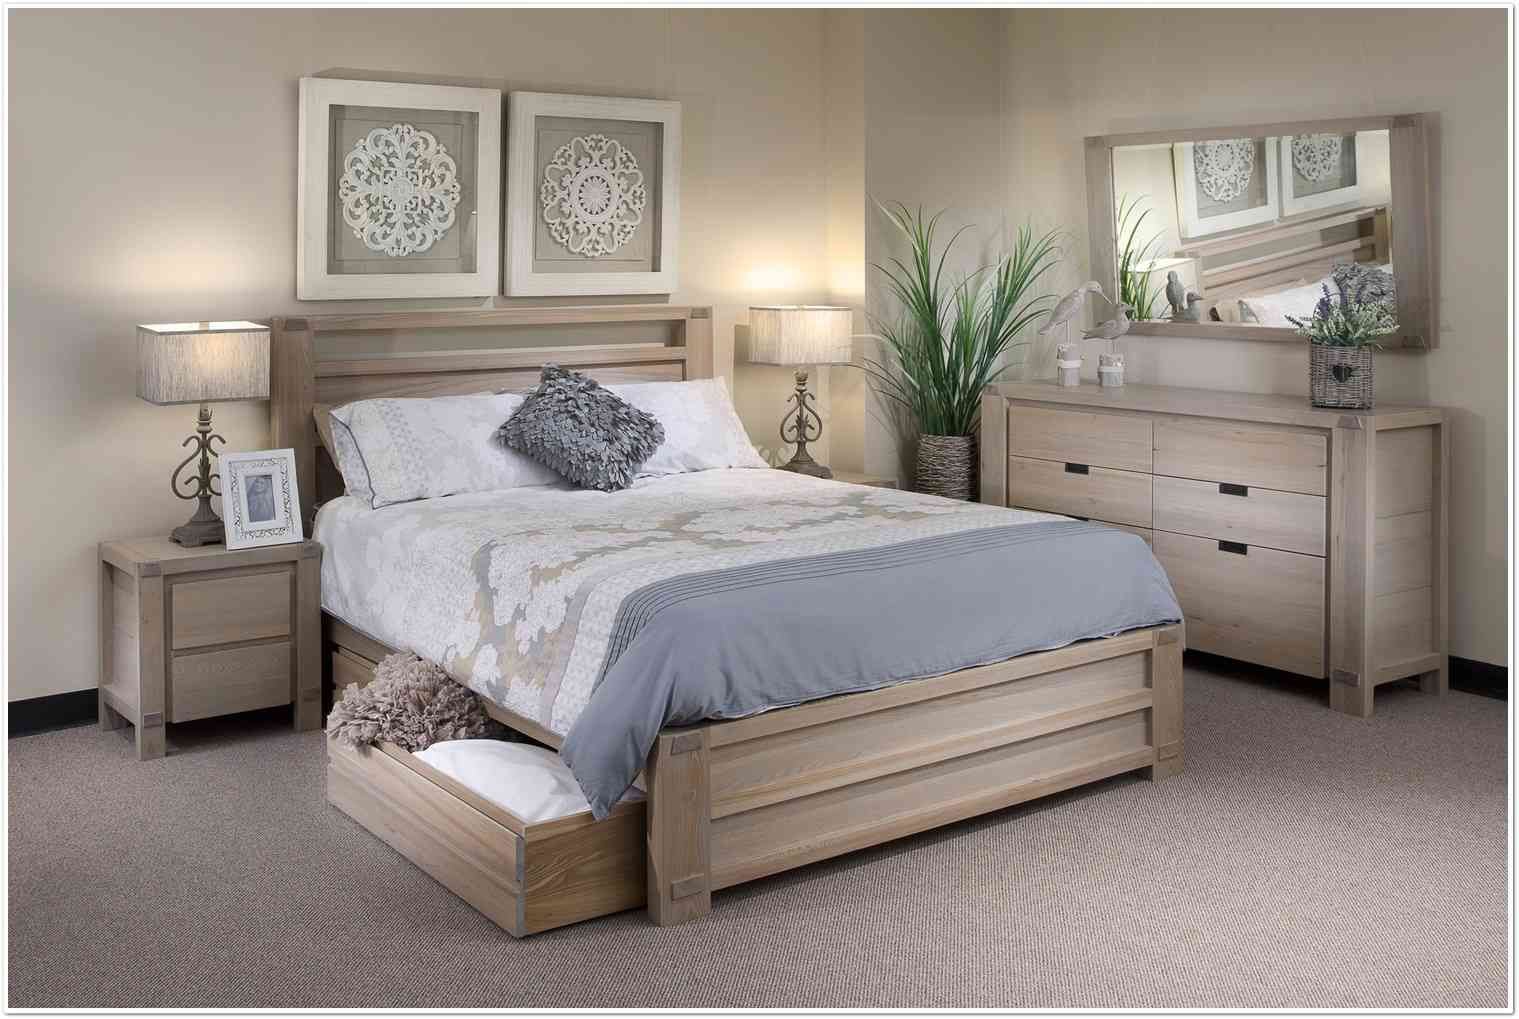 Bedroom Furniture Package Deals Sydney Furniture Packages Deals Amart Furniture Beautiful